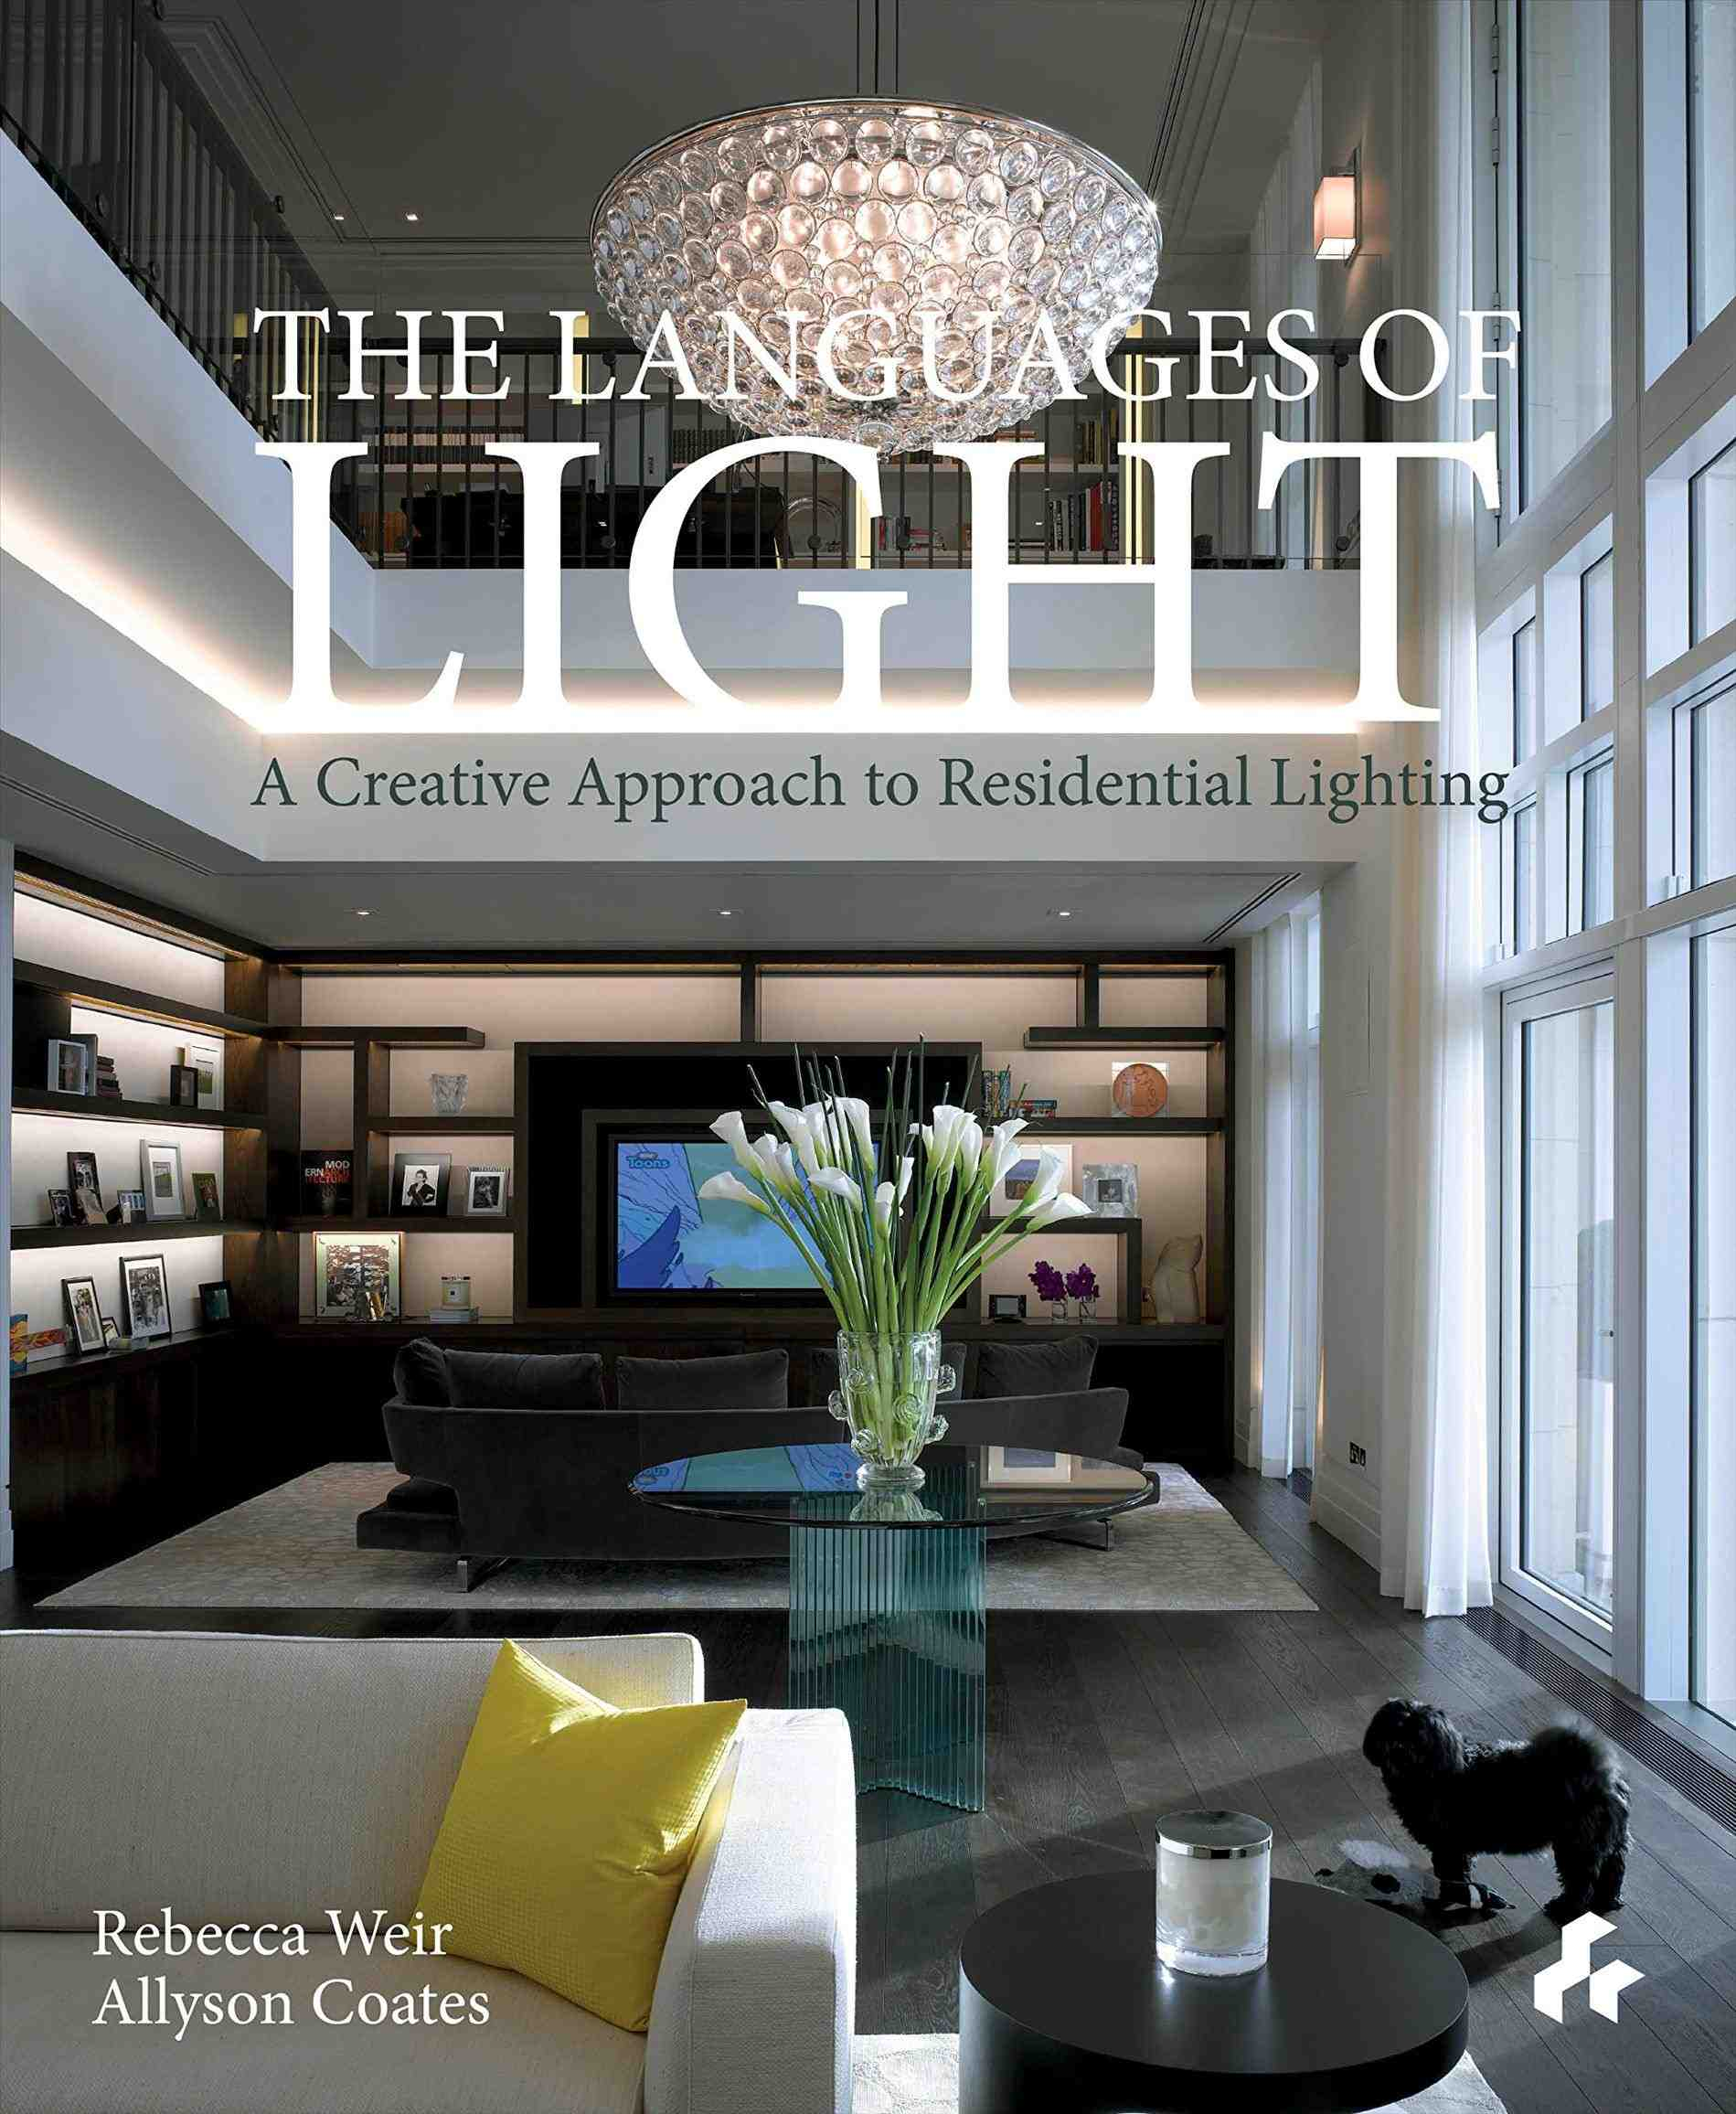 Lighting In Interior Design Creative: The Languages Of Light: A Creative Approach To Residential